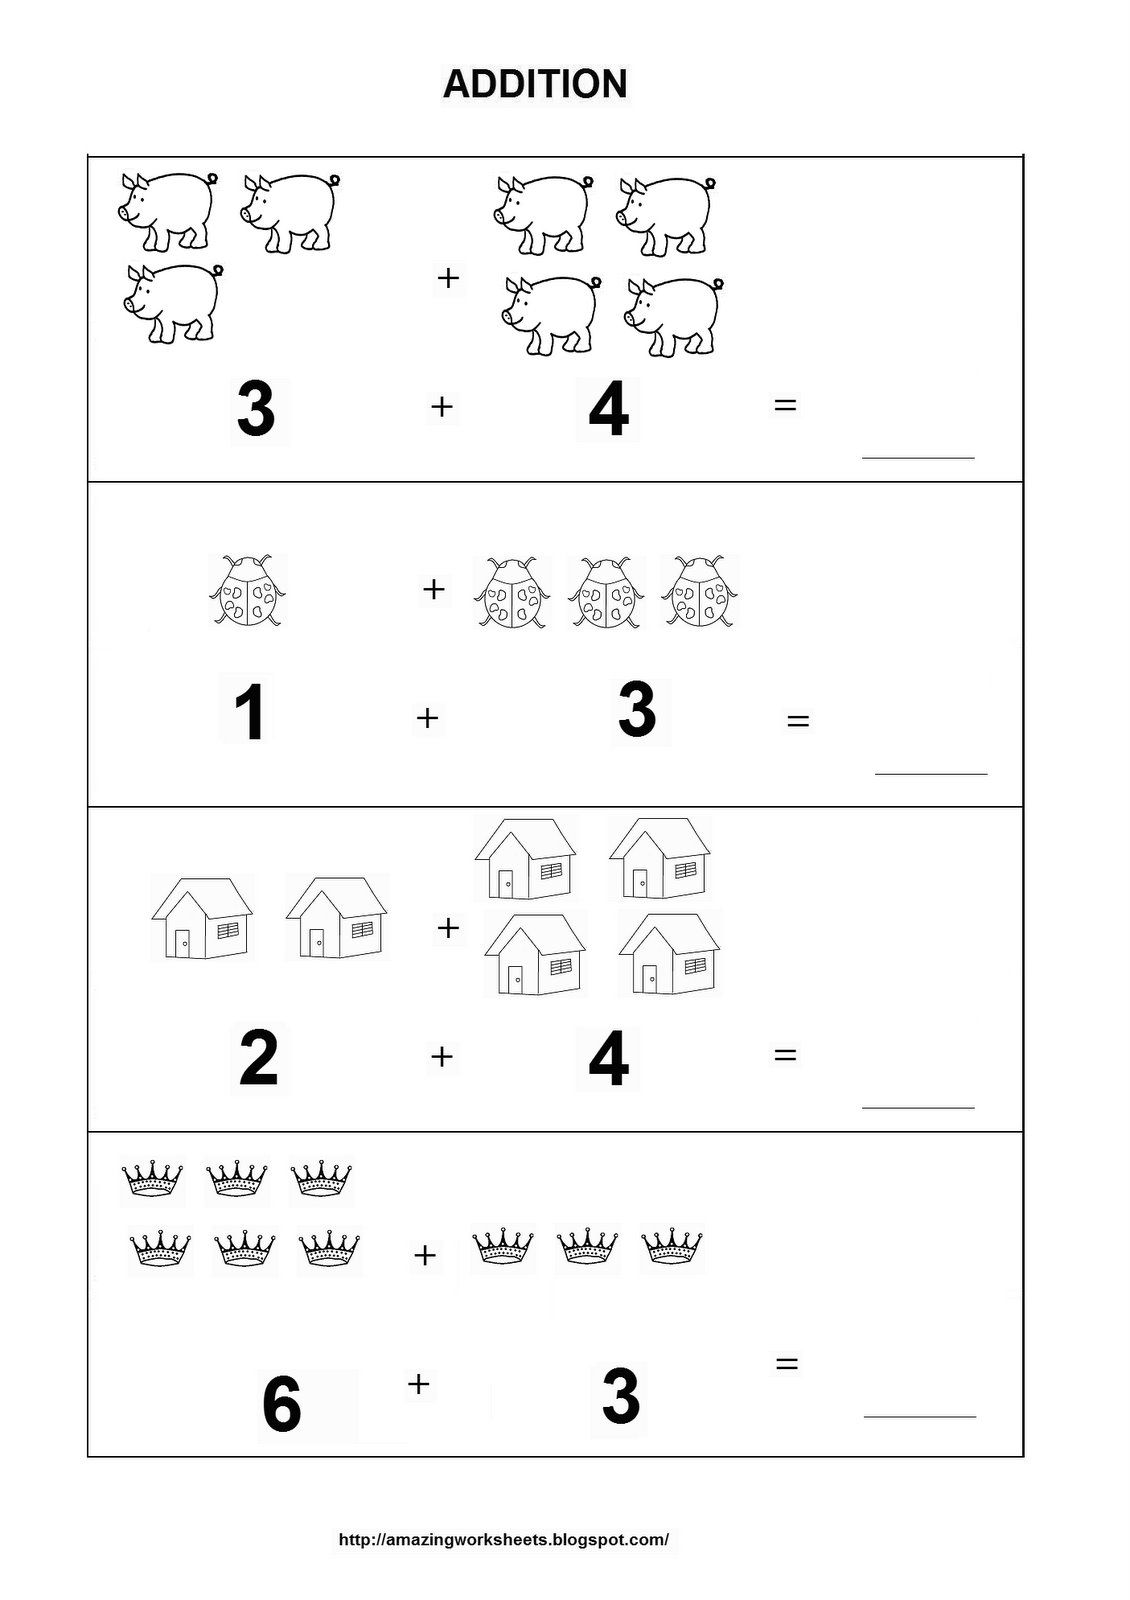 f64bb7d8fe96a17f82504215b27eb25bjpg 1130 1600 – Beginning Addition Worksheets